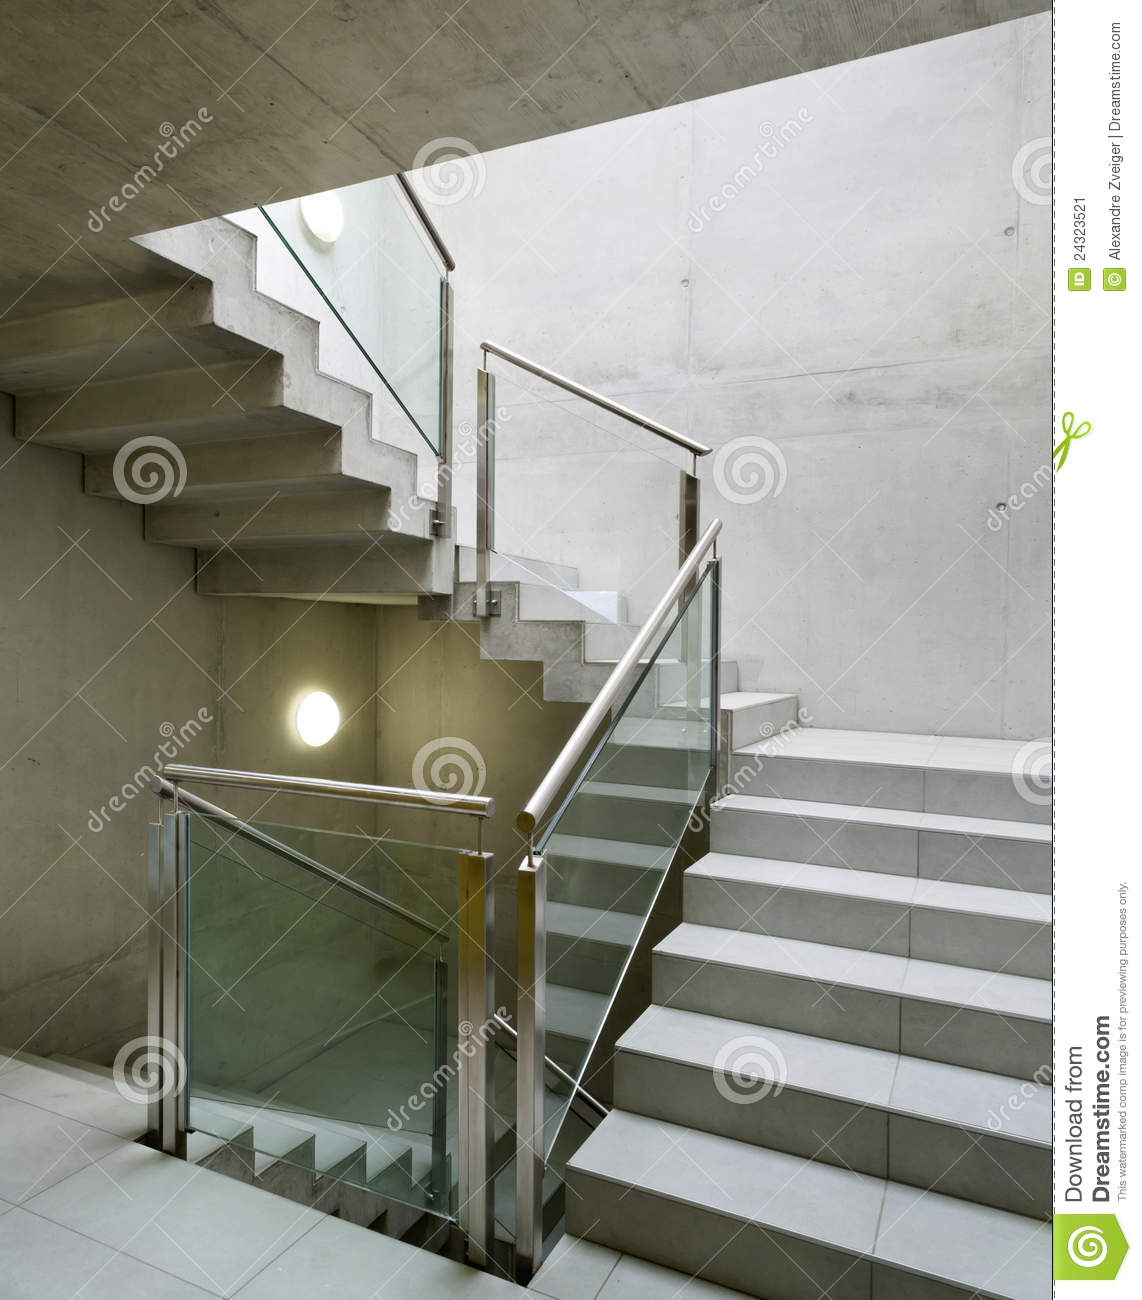 Building Interior Staircase Stock Image Image 24323521